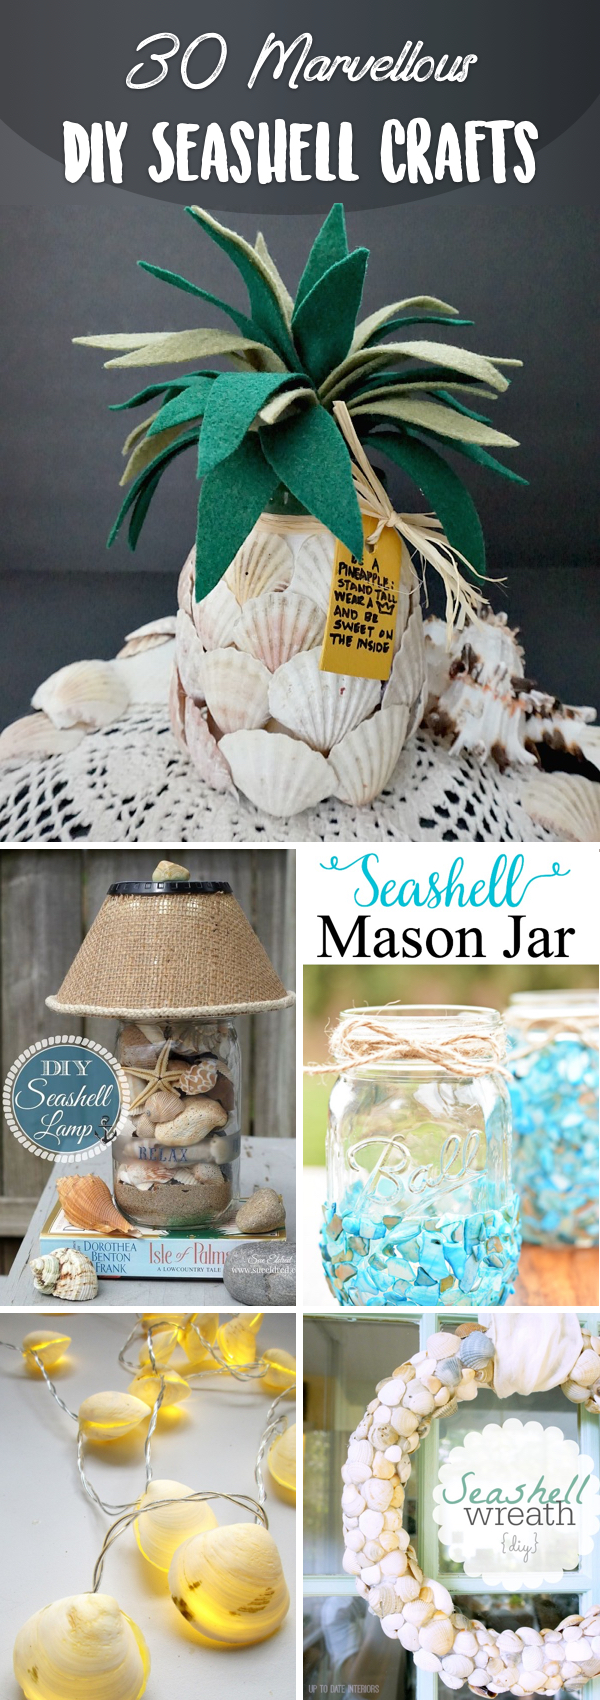 30 Marvellous Diy Seashell Crafts Adding A Beachy Flair To Your Space